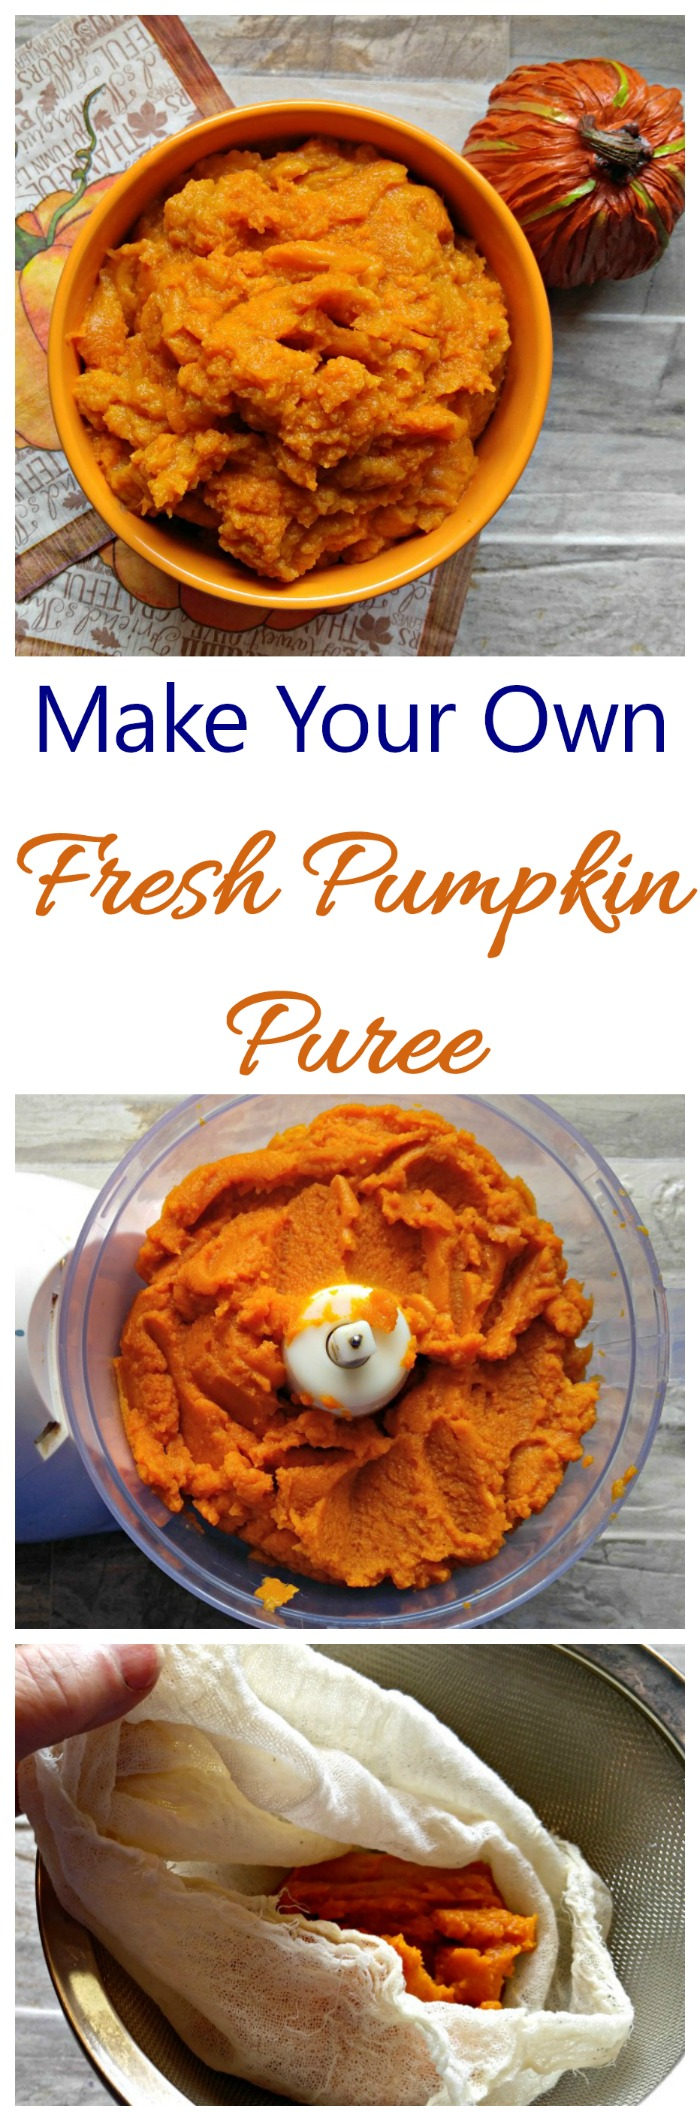 Fresh pumpkin puree is easy to make and perfect for all your fall recipes. #pumpkintime #pumpkinrecipes